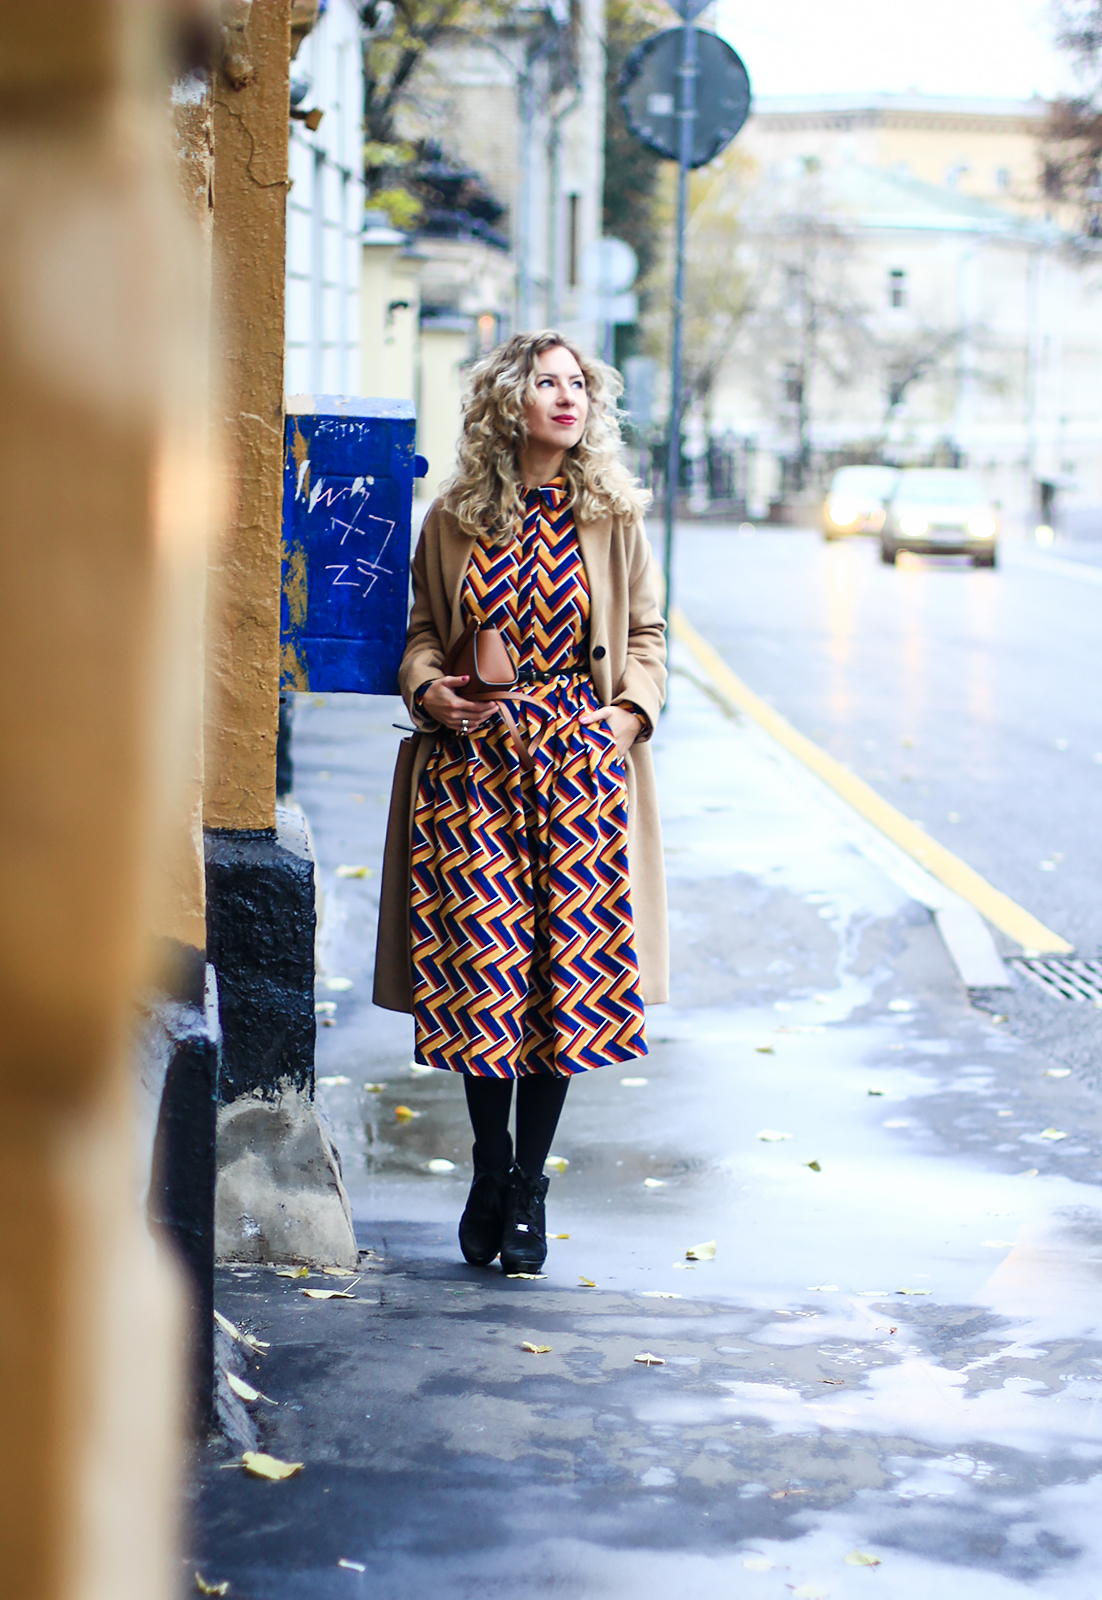 margarita_maslova_Spicy Mustard_dress_riverside_pantone_fall_look_streetstyle camel coat